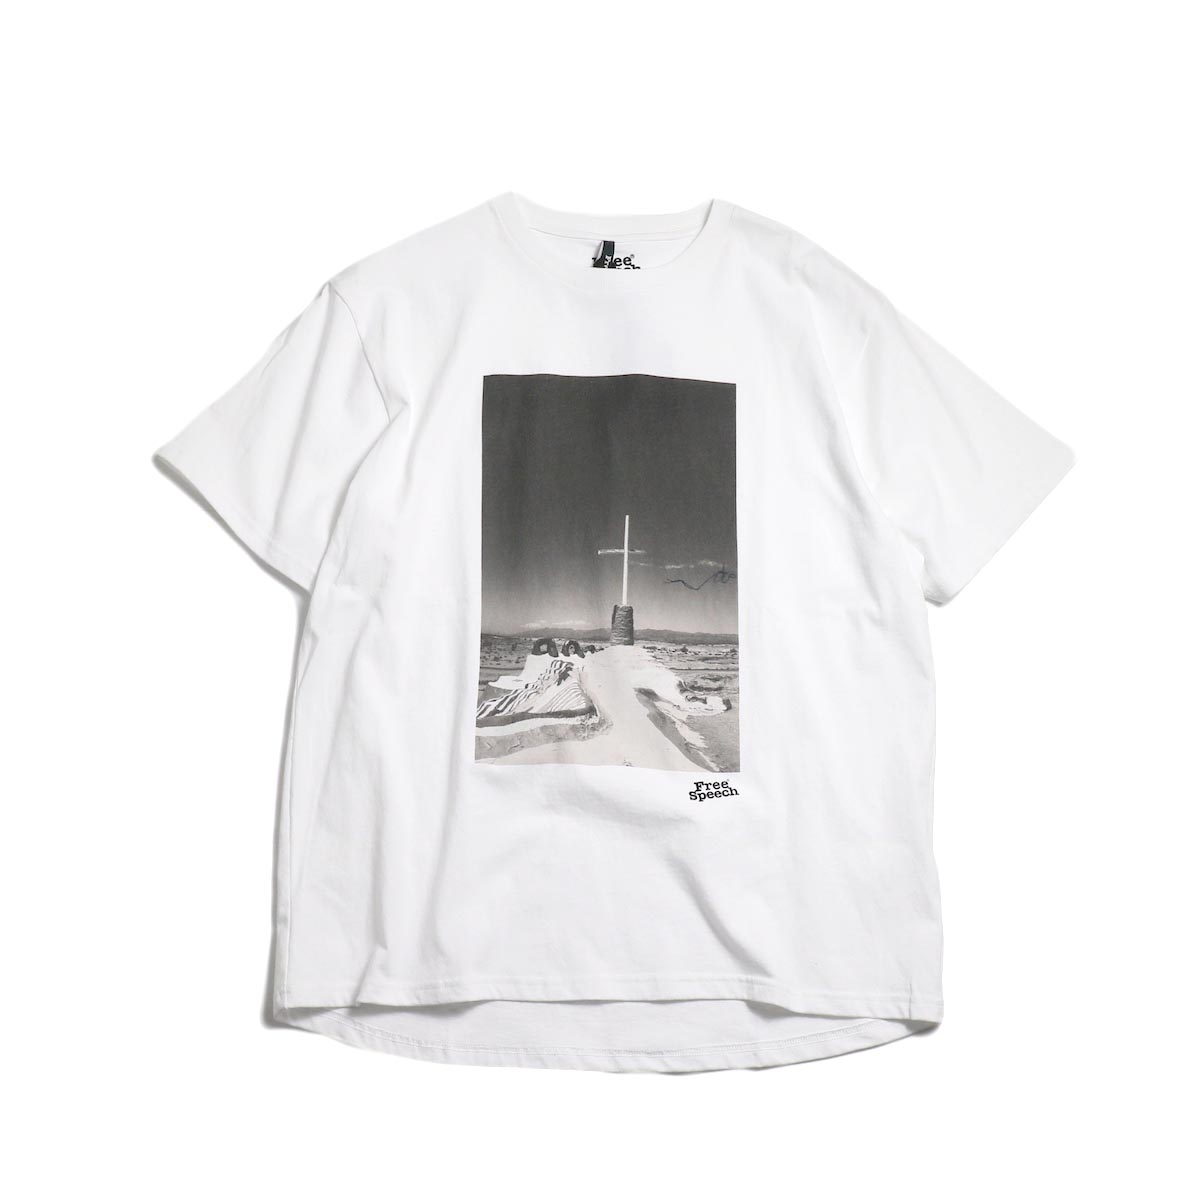 Free Speech / Photo Print S/S Tee -White